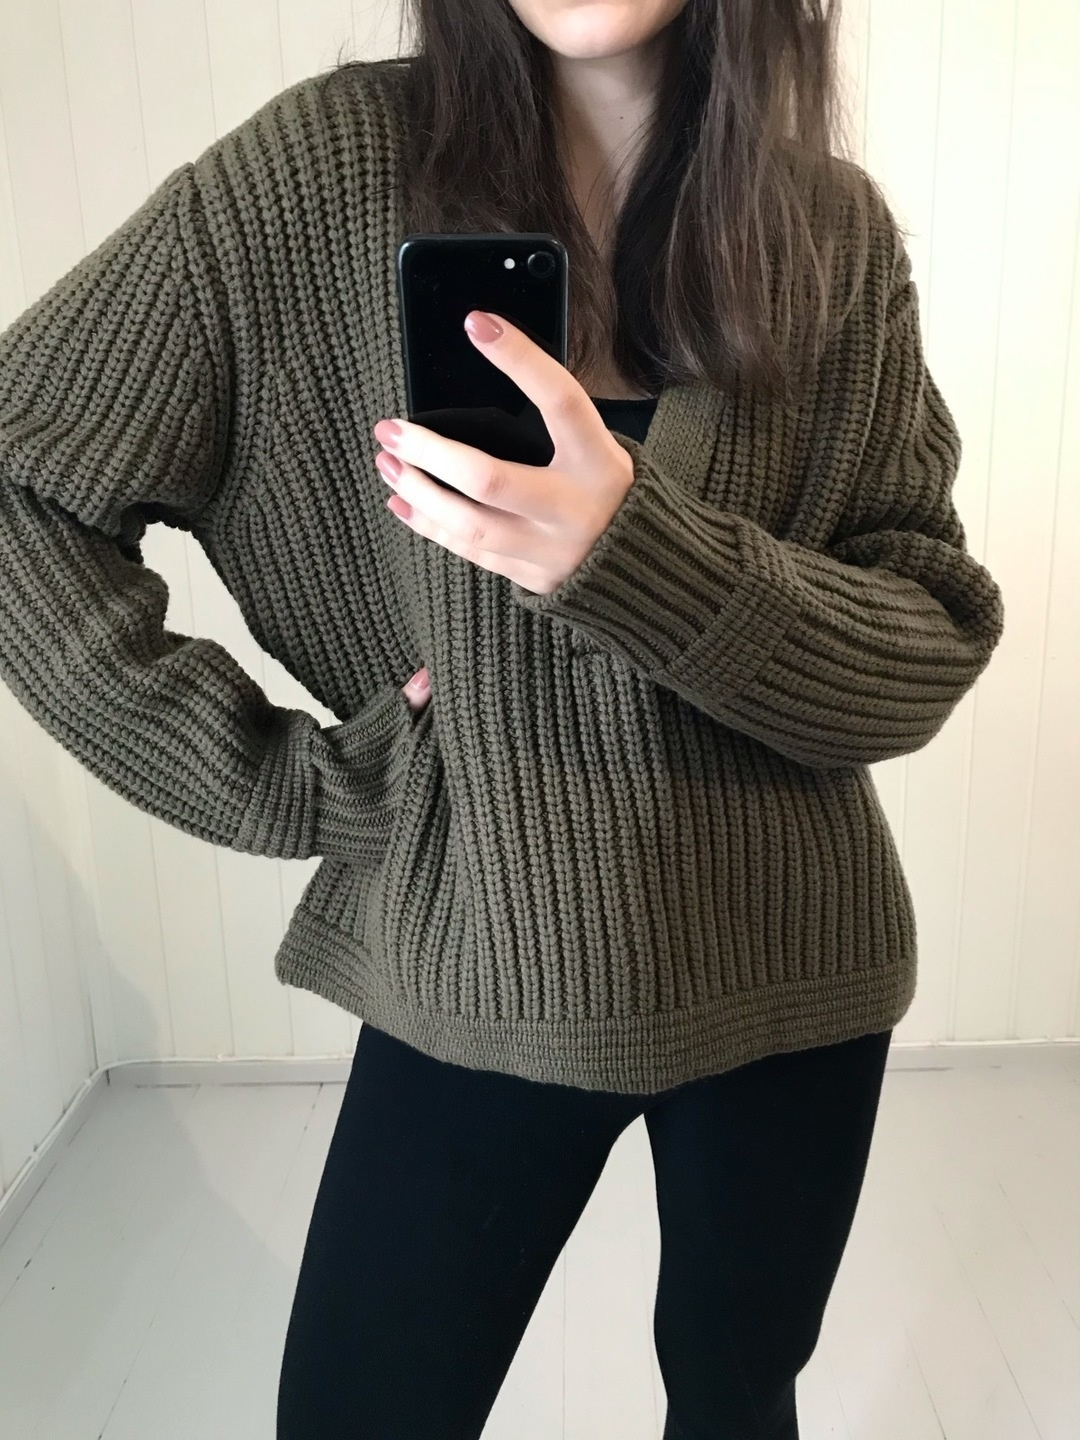 Women's jumpers & cardigans - PREMIUM H&M photo 4